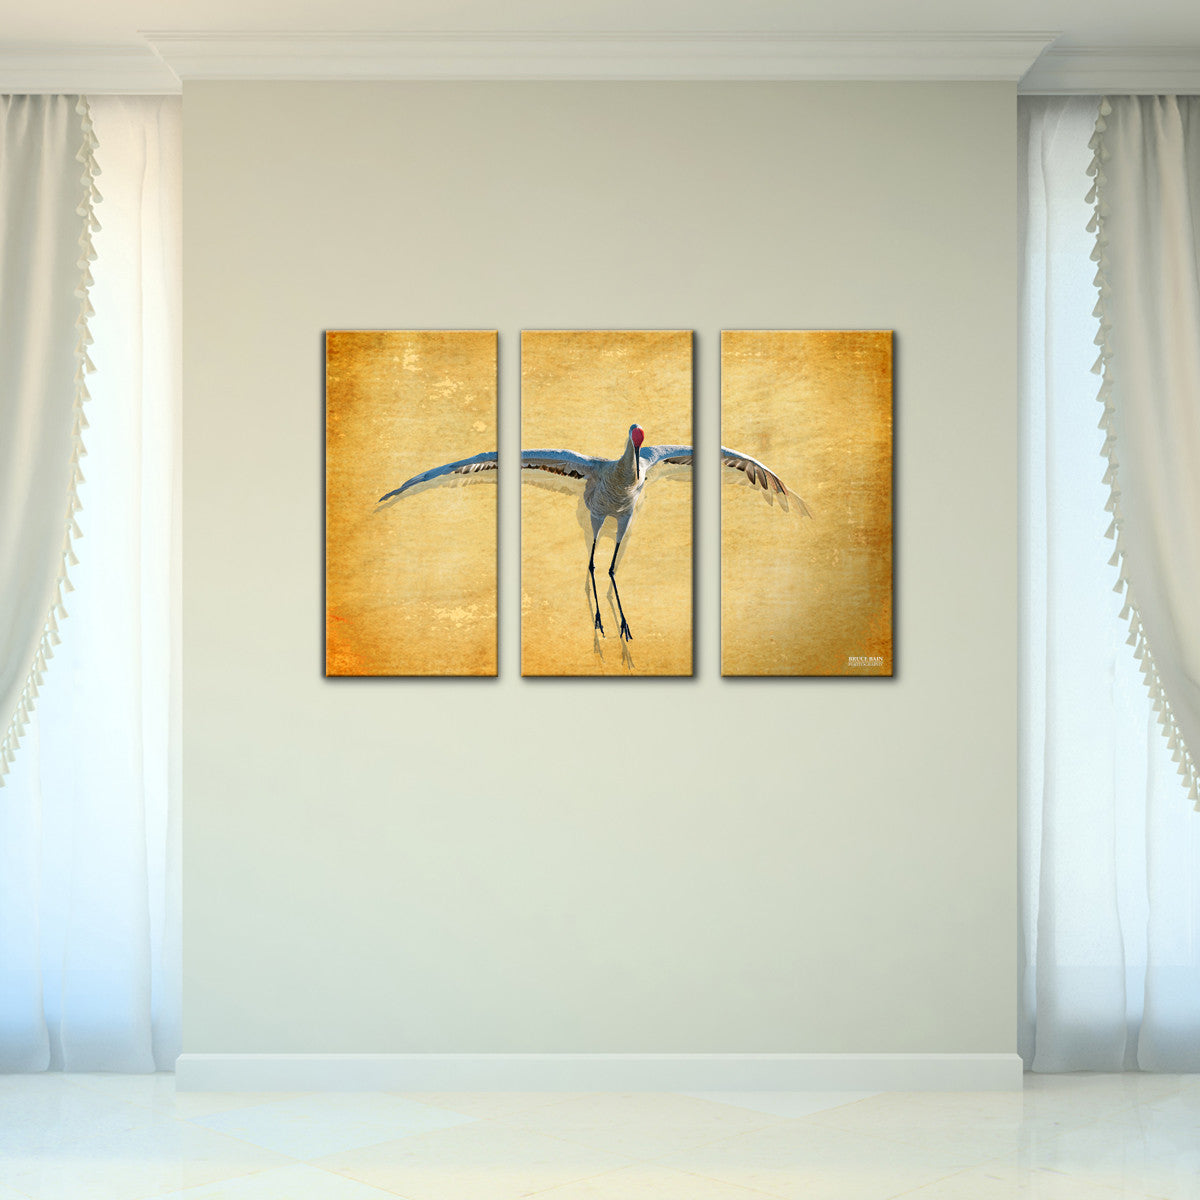 Bruce Bain \'Dancing Bird\' 24x36 inch Canvas Wall Art (3-Pc set ...